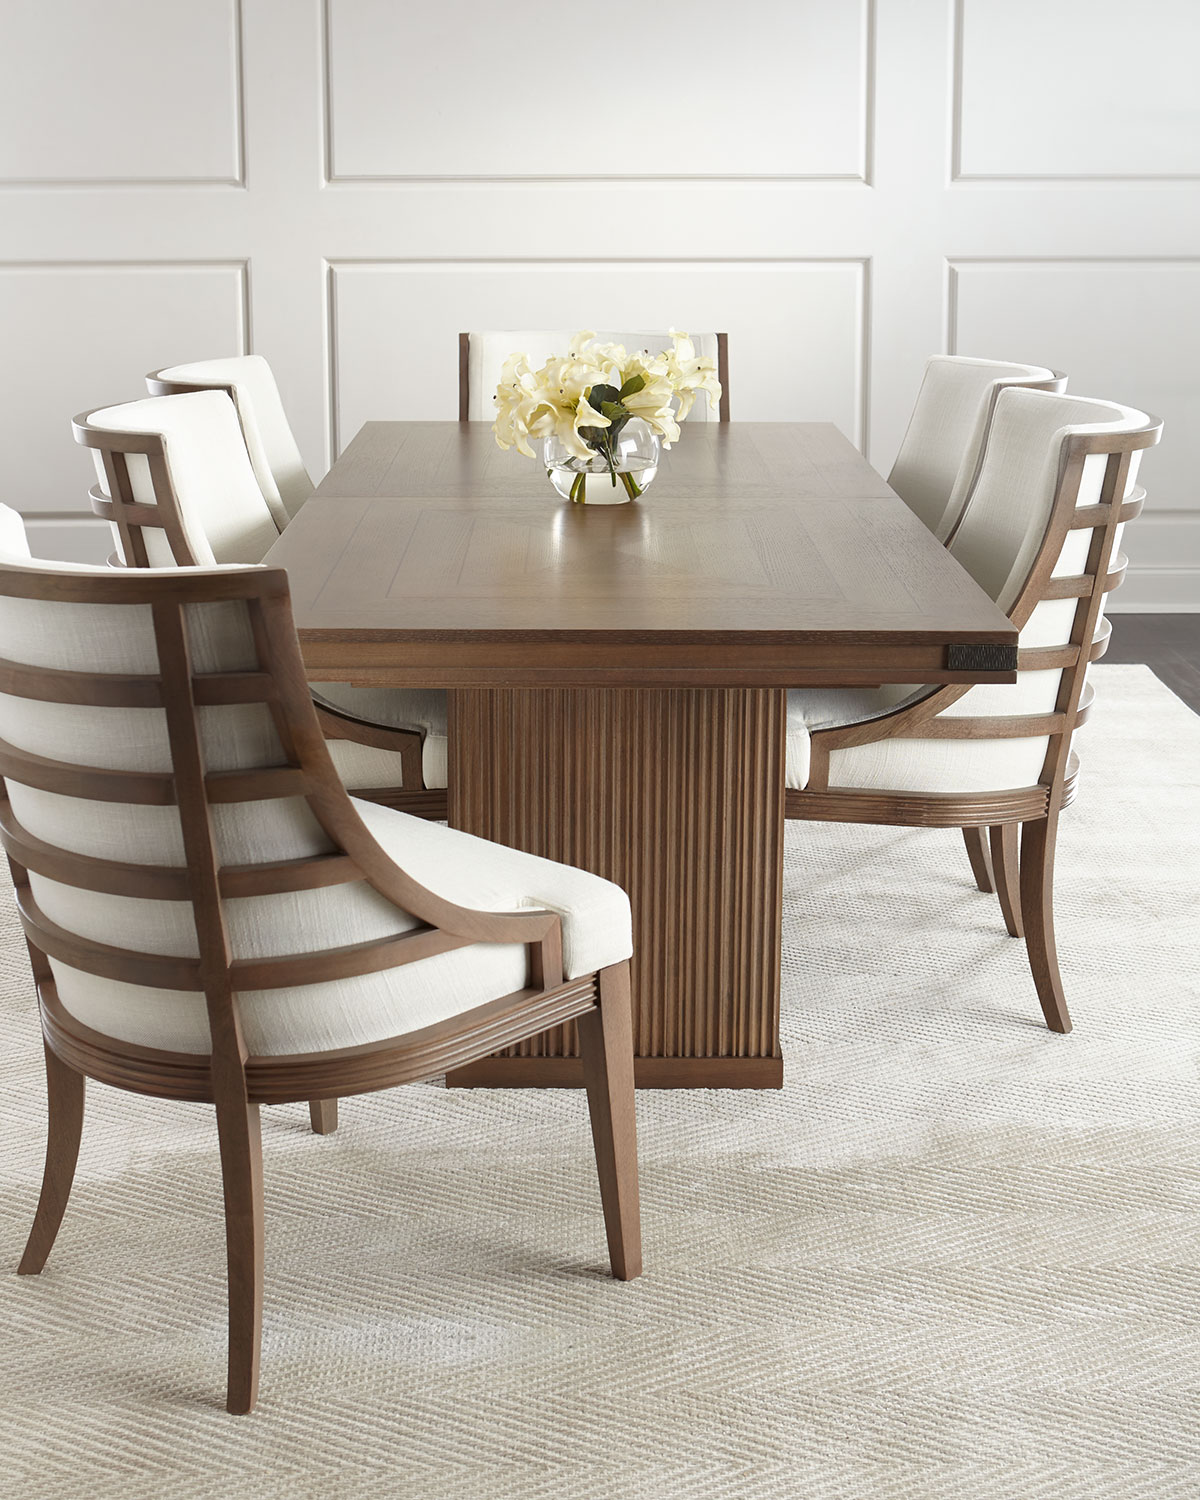 Neiman_marcus Holden Dining Table